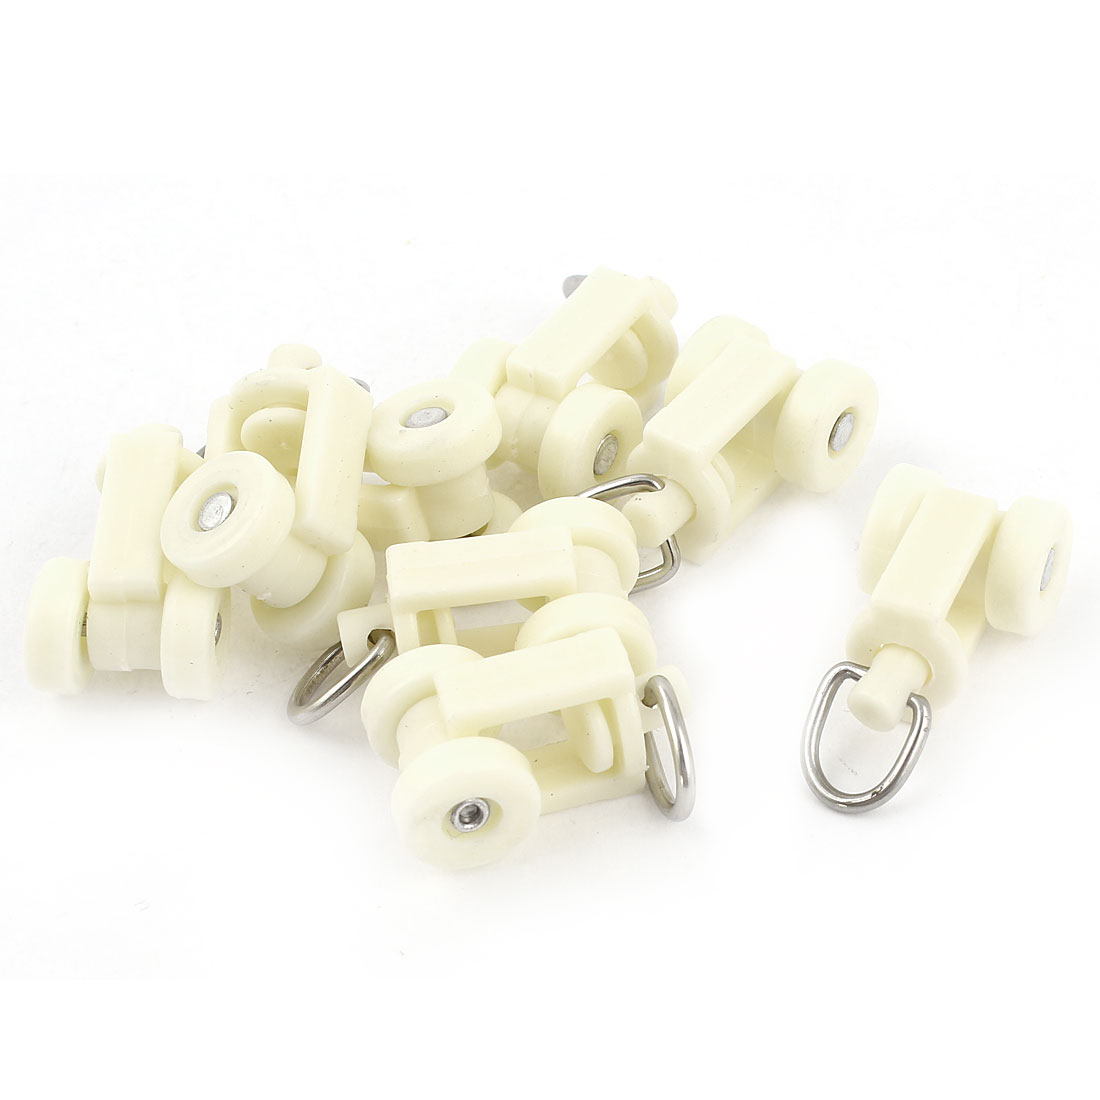 White Plastic Curtain Track Rail Rollers 12mm Diameter Wheel 8 Pcs